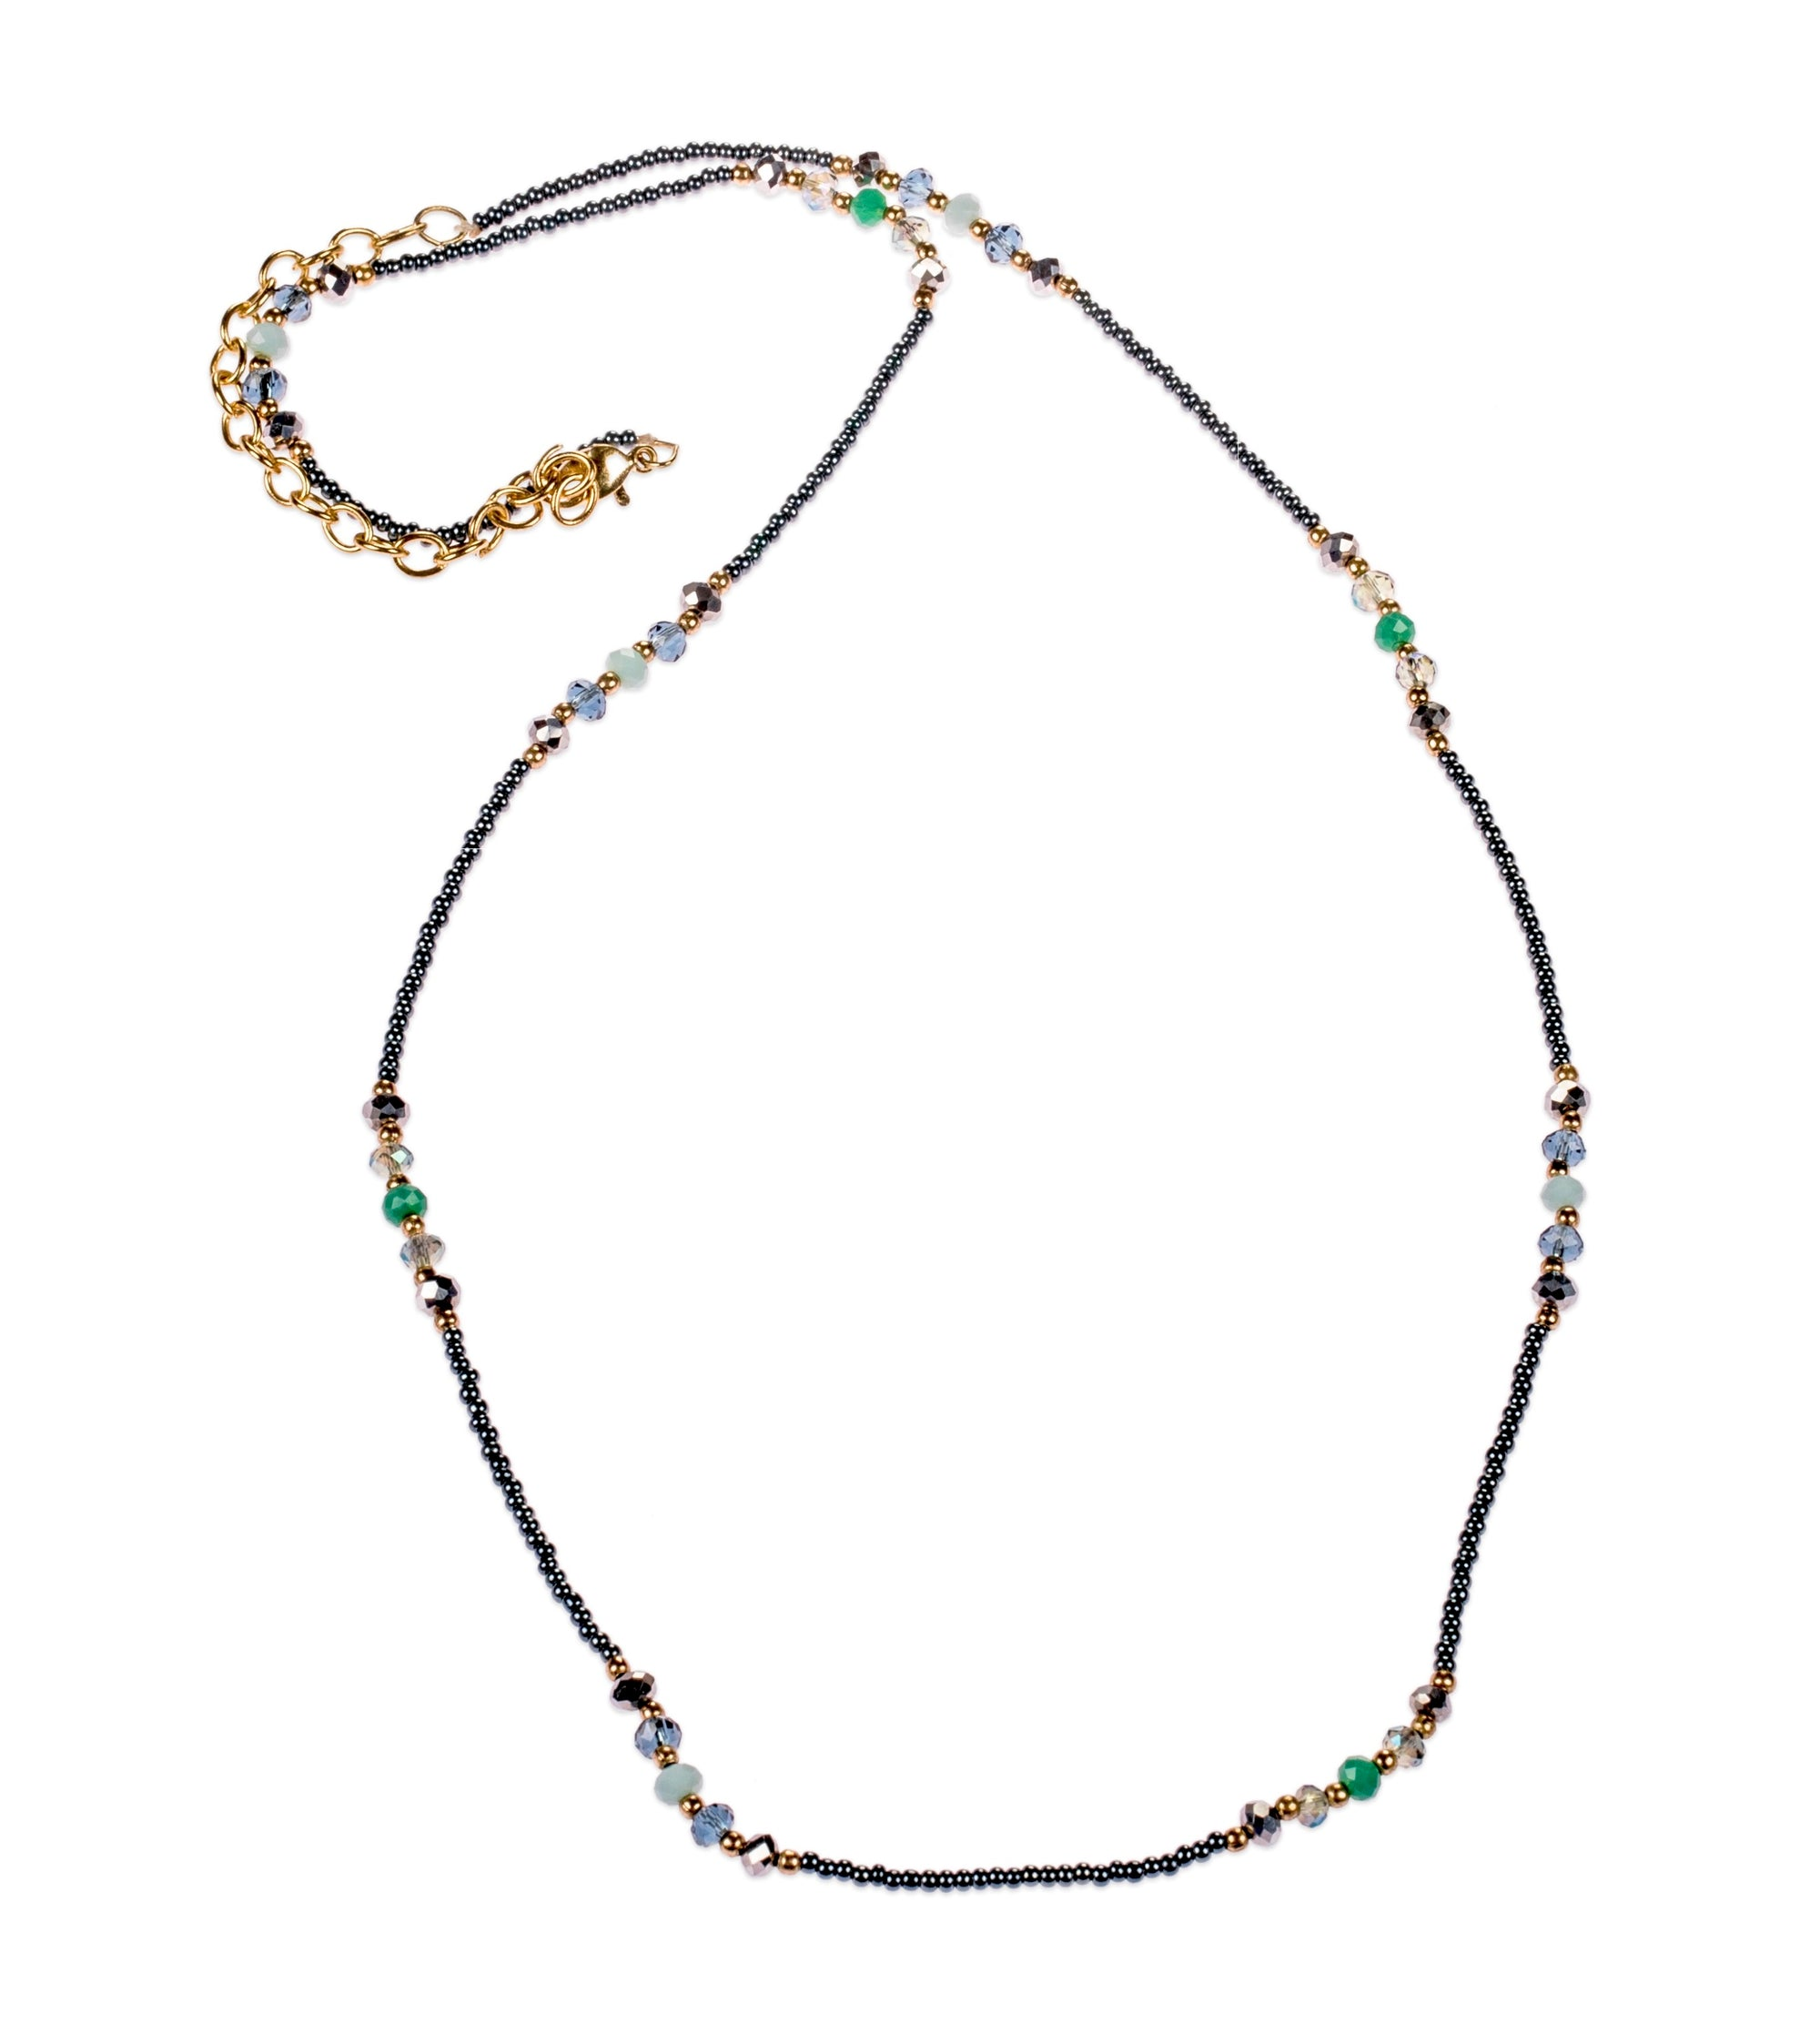 Esha Necklace by Daughters of the Ganges